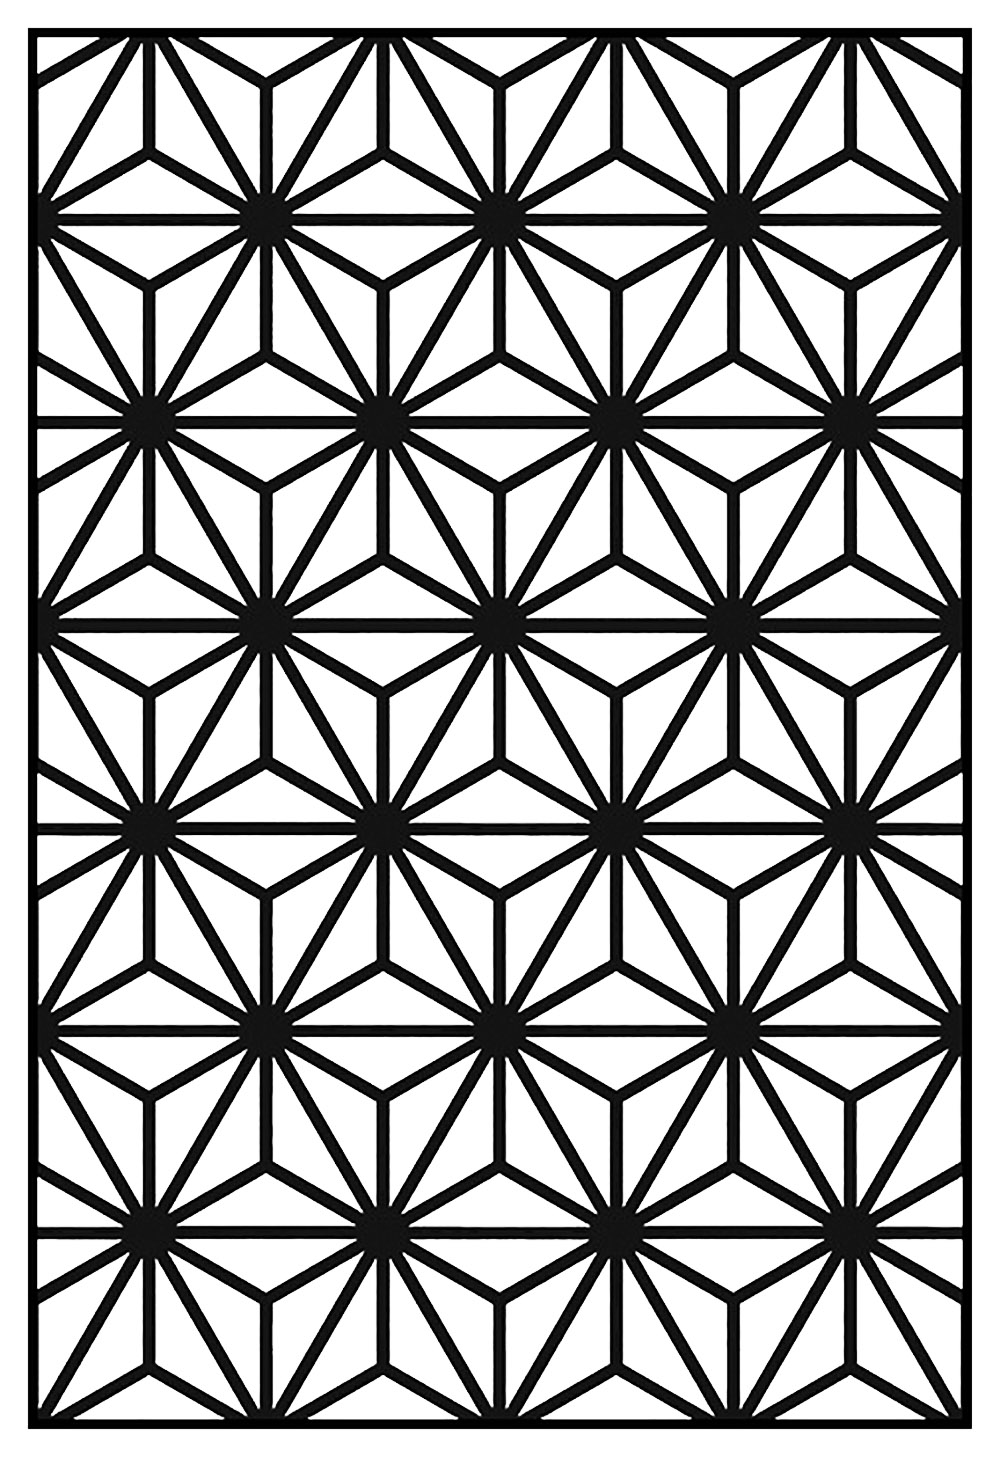 Geometric patterns art deco 10 art deco coloring for Arts et decoration abonnement